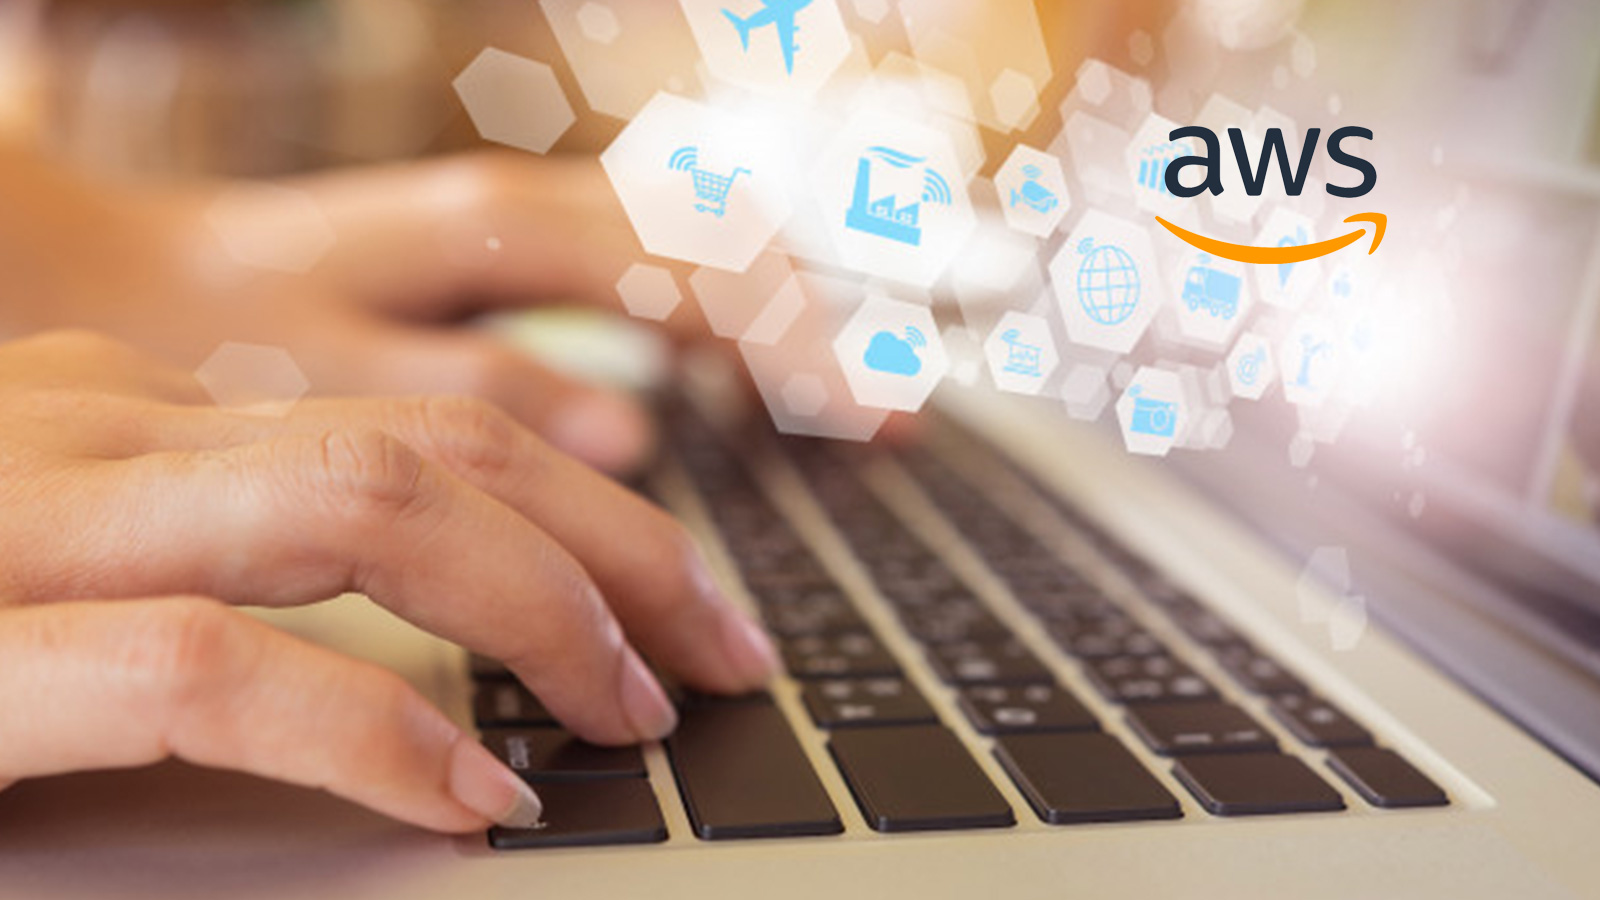 AWS Announces General Availability of AWS Lake Formation